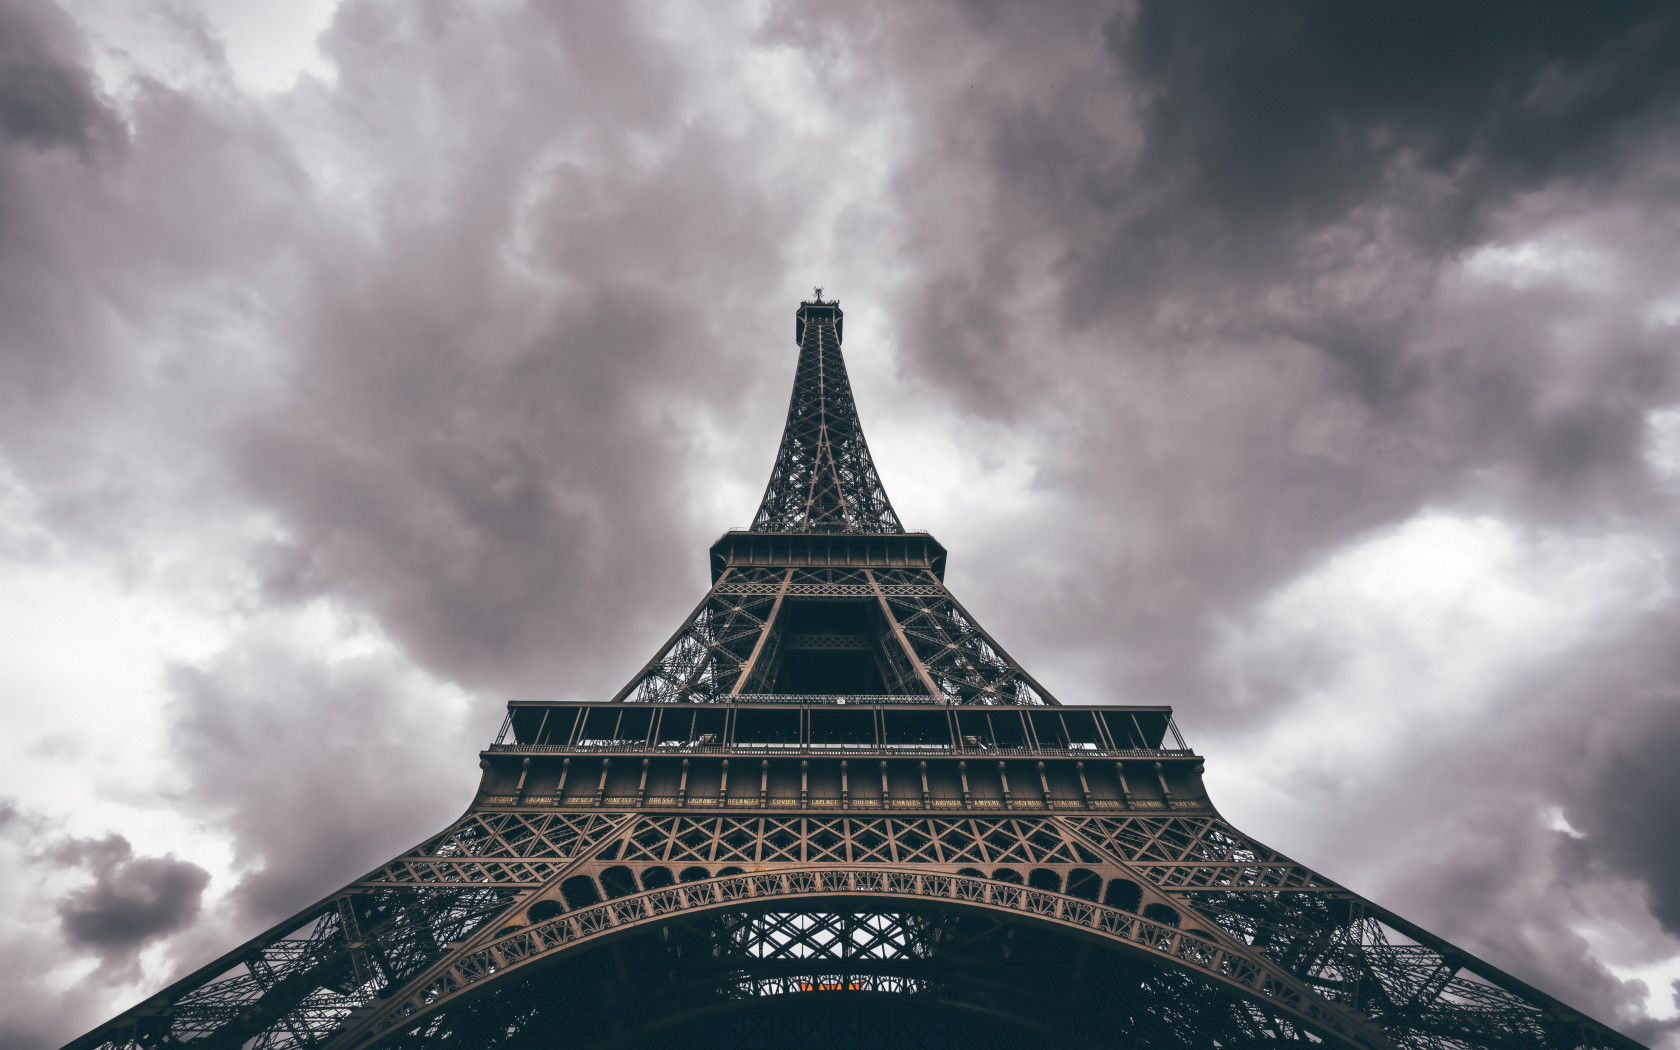 Eiffel Tower in a cloudy day wallpaper 1680x1050